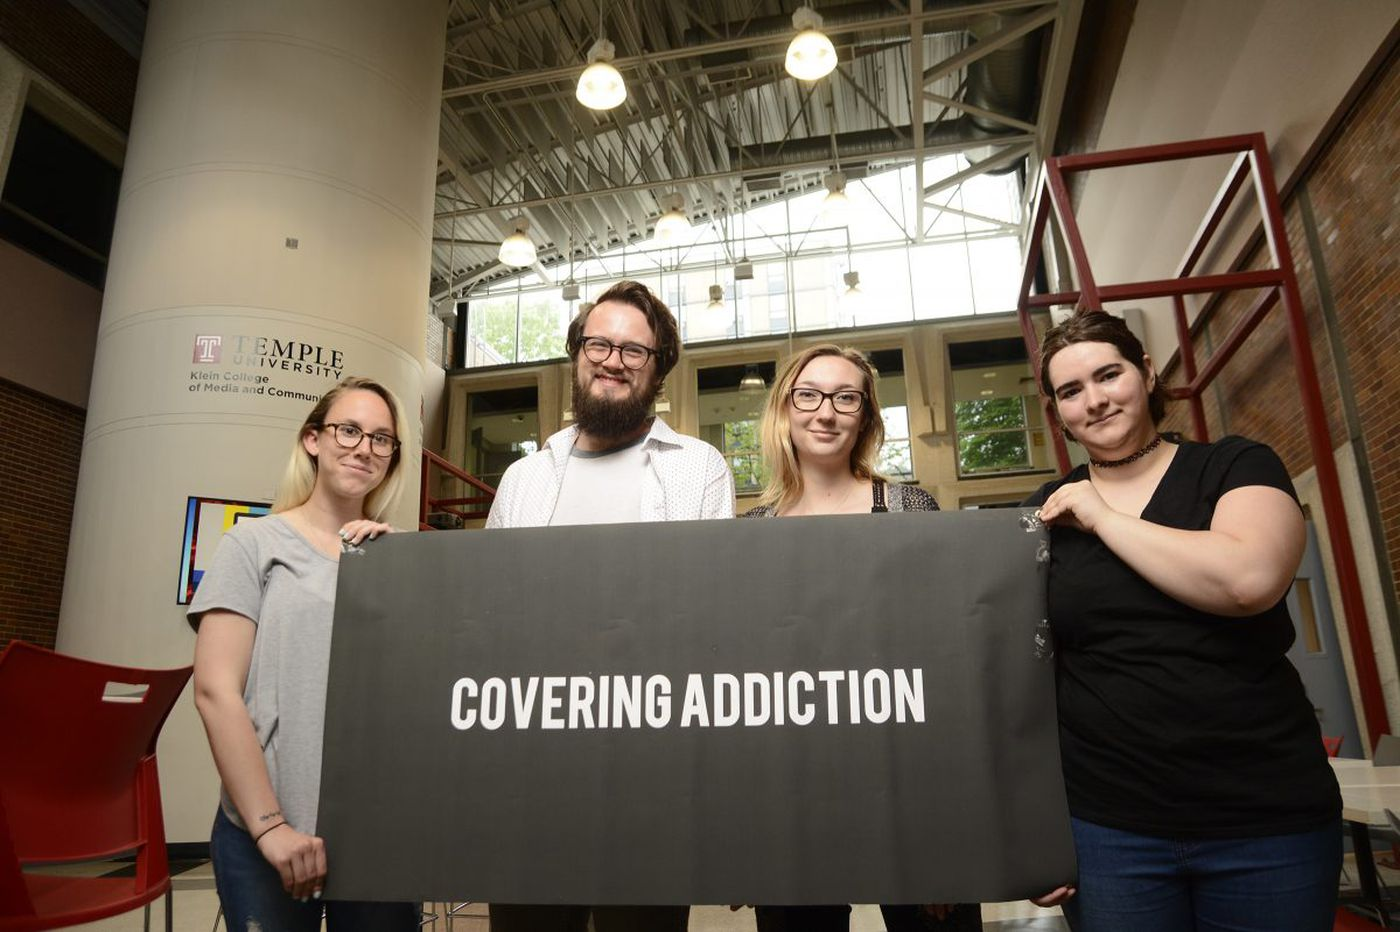 Temple students' class project on addiction teaches us all | Mike Newall